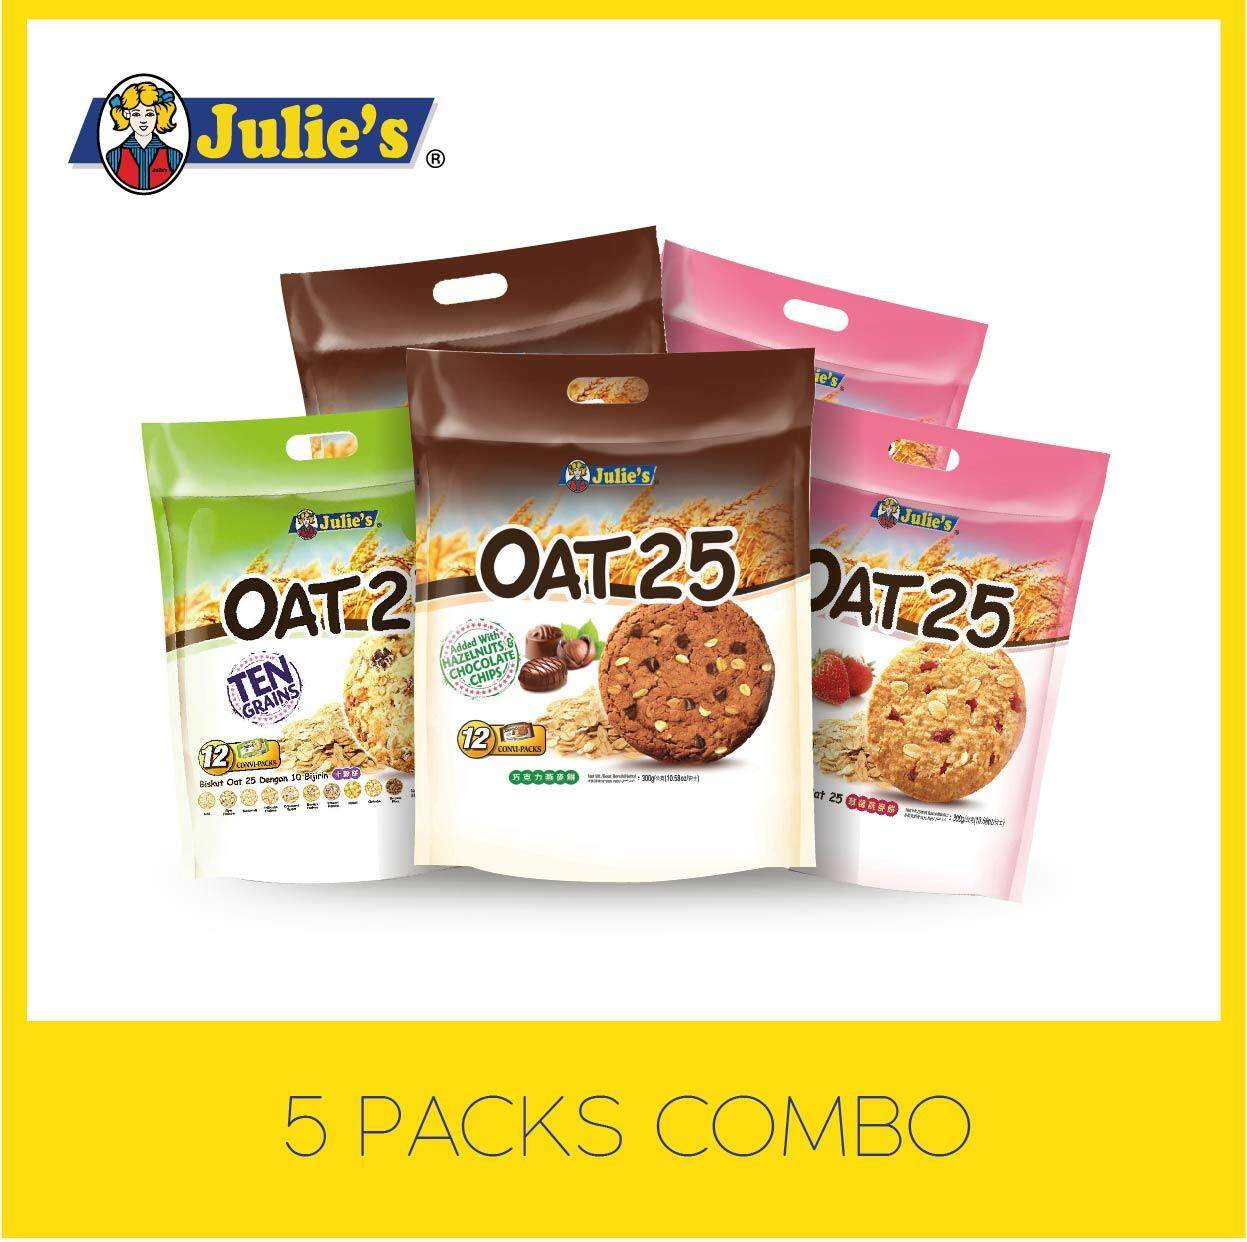 Julies Oat25 Healthy Breakfast Deal